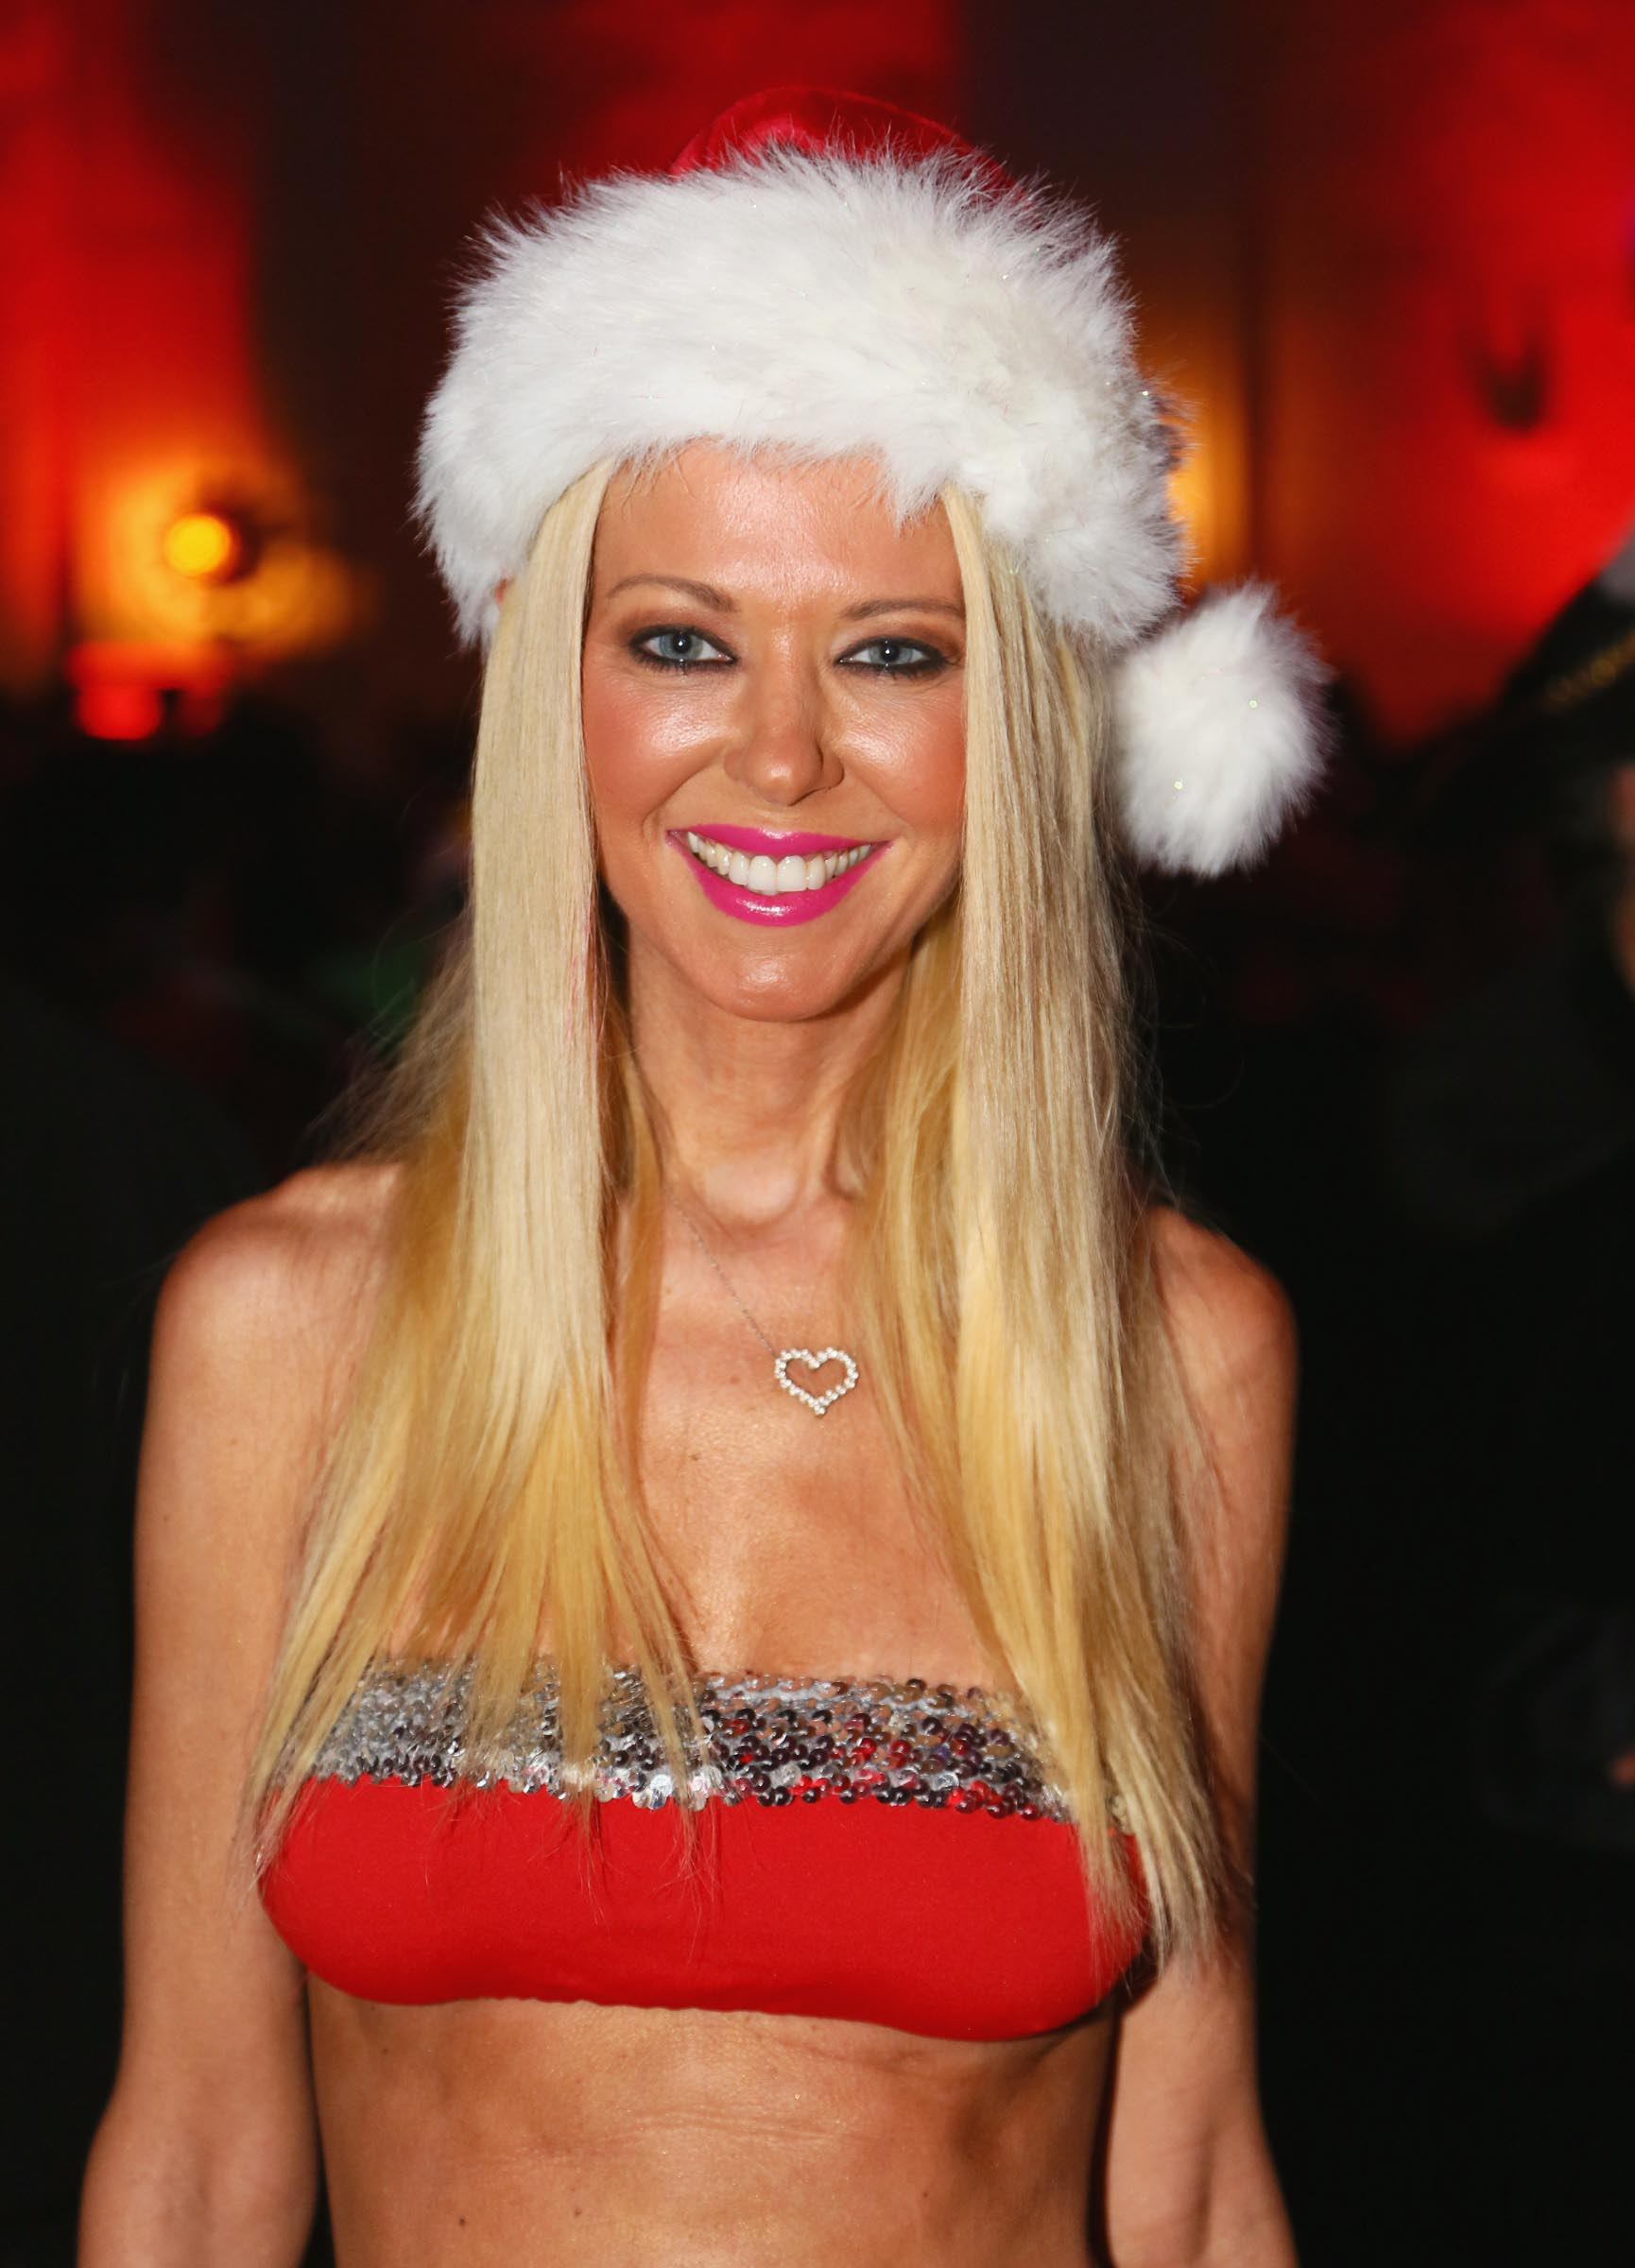 LOS ANGELES, CA - OCTOBER 29:  Actress Tara Reid attends Trick or treats! - The 6th Annual treats! Magazine Halloween Party Sponsored by Absolut Elyx on October 29, 2016 in Los Angeles, California.  (Photo by Gabriel Olsen/WireImage)